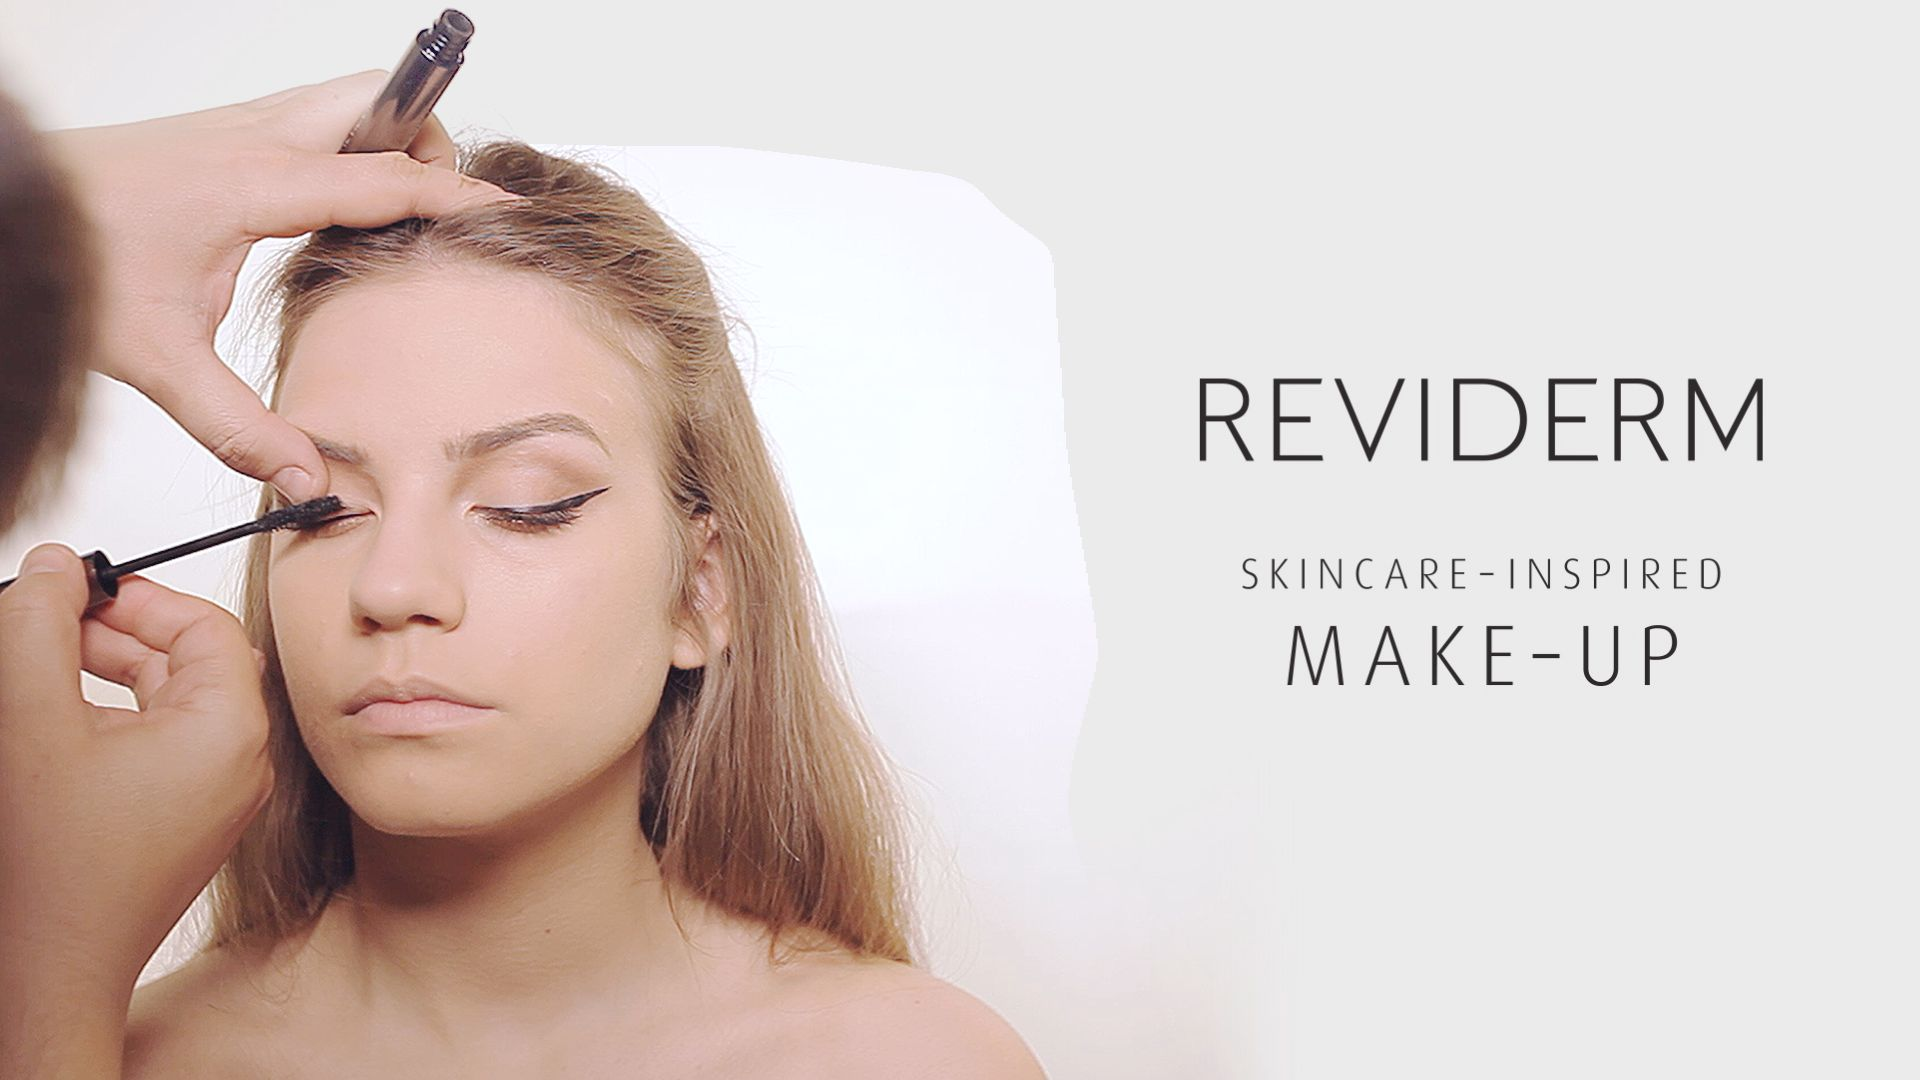 Reviderm make up minute oci 7